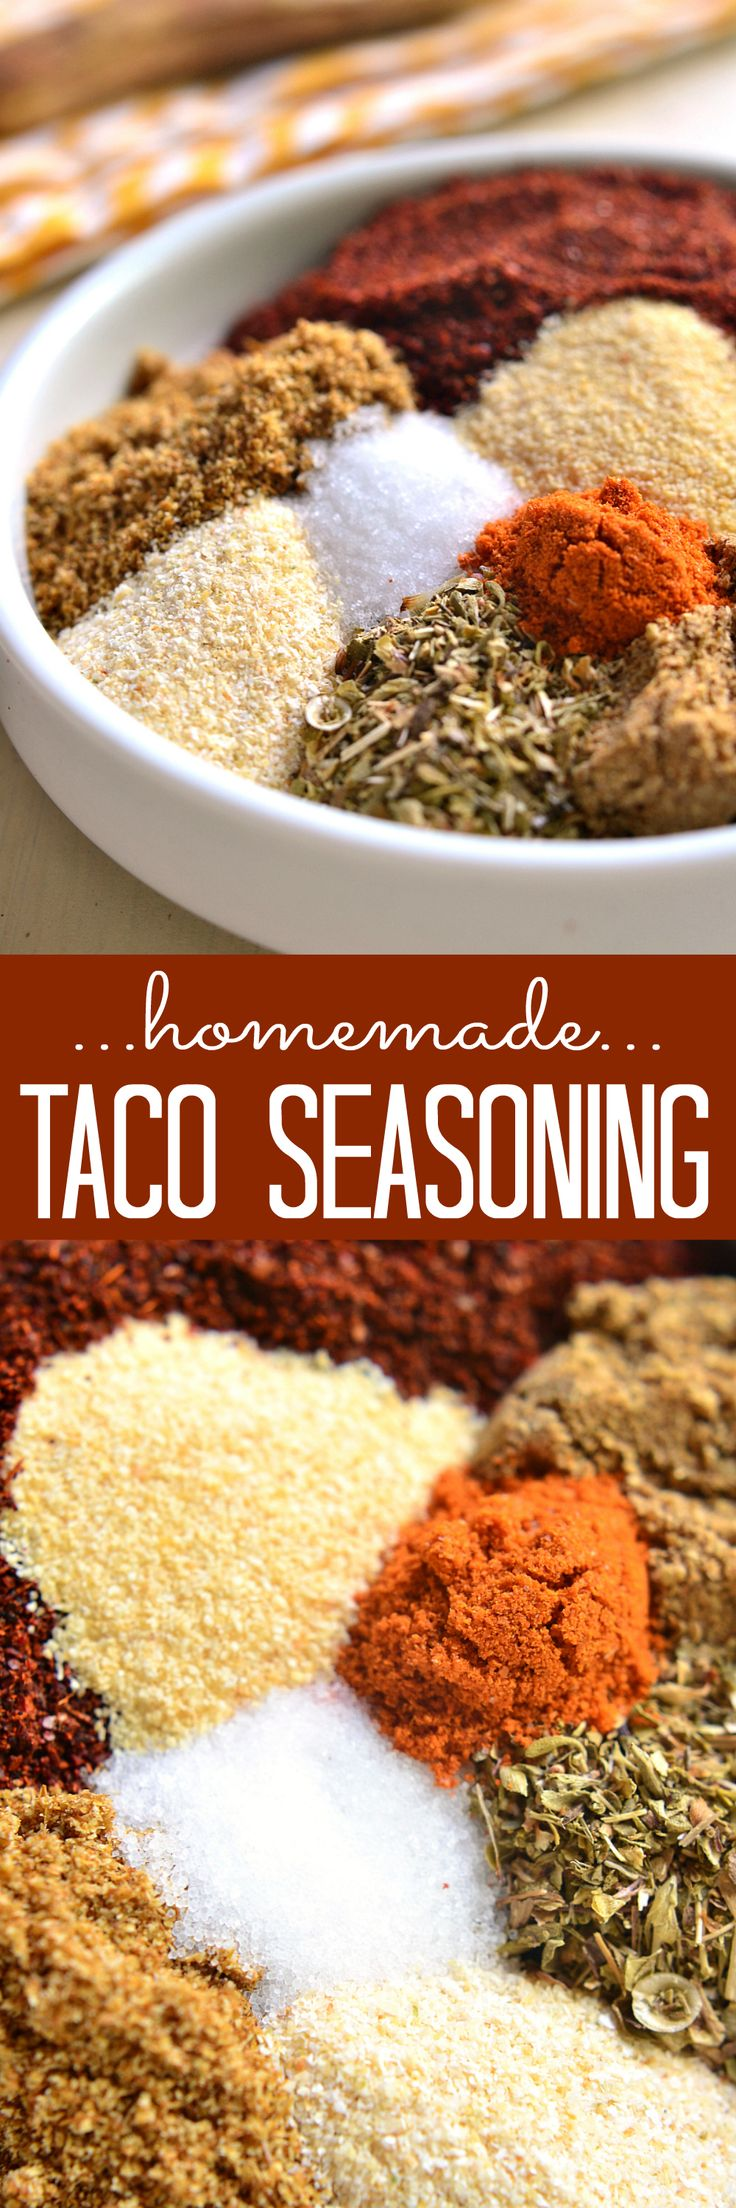 Homemade Taco Seasoning - made with just 8 simple ingredients and ready in no time at all! Take your tacos to the next level with this delicious homemade twist!